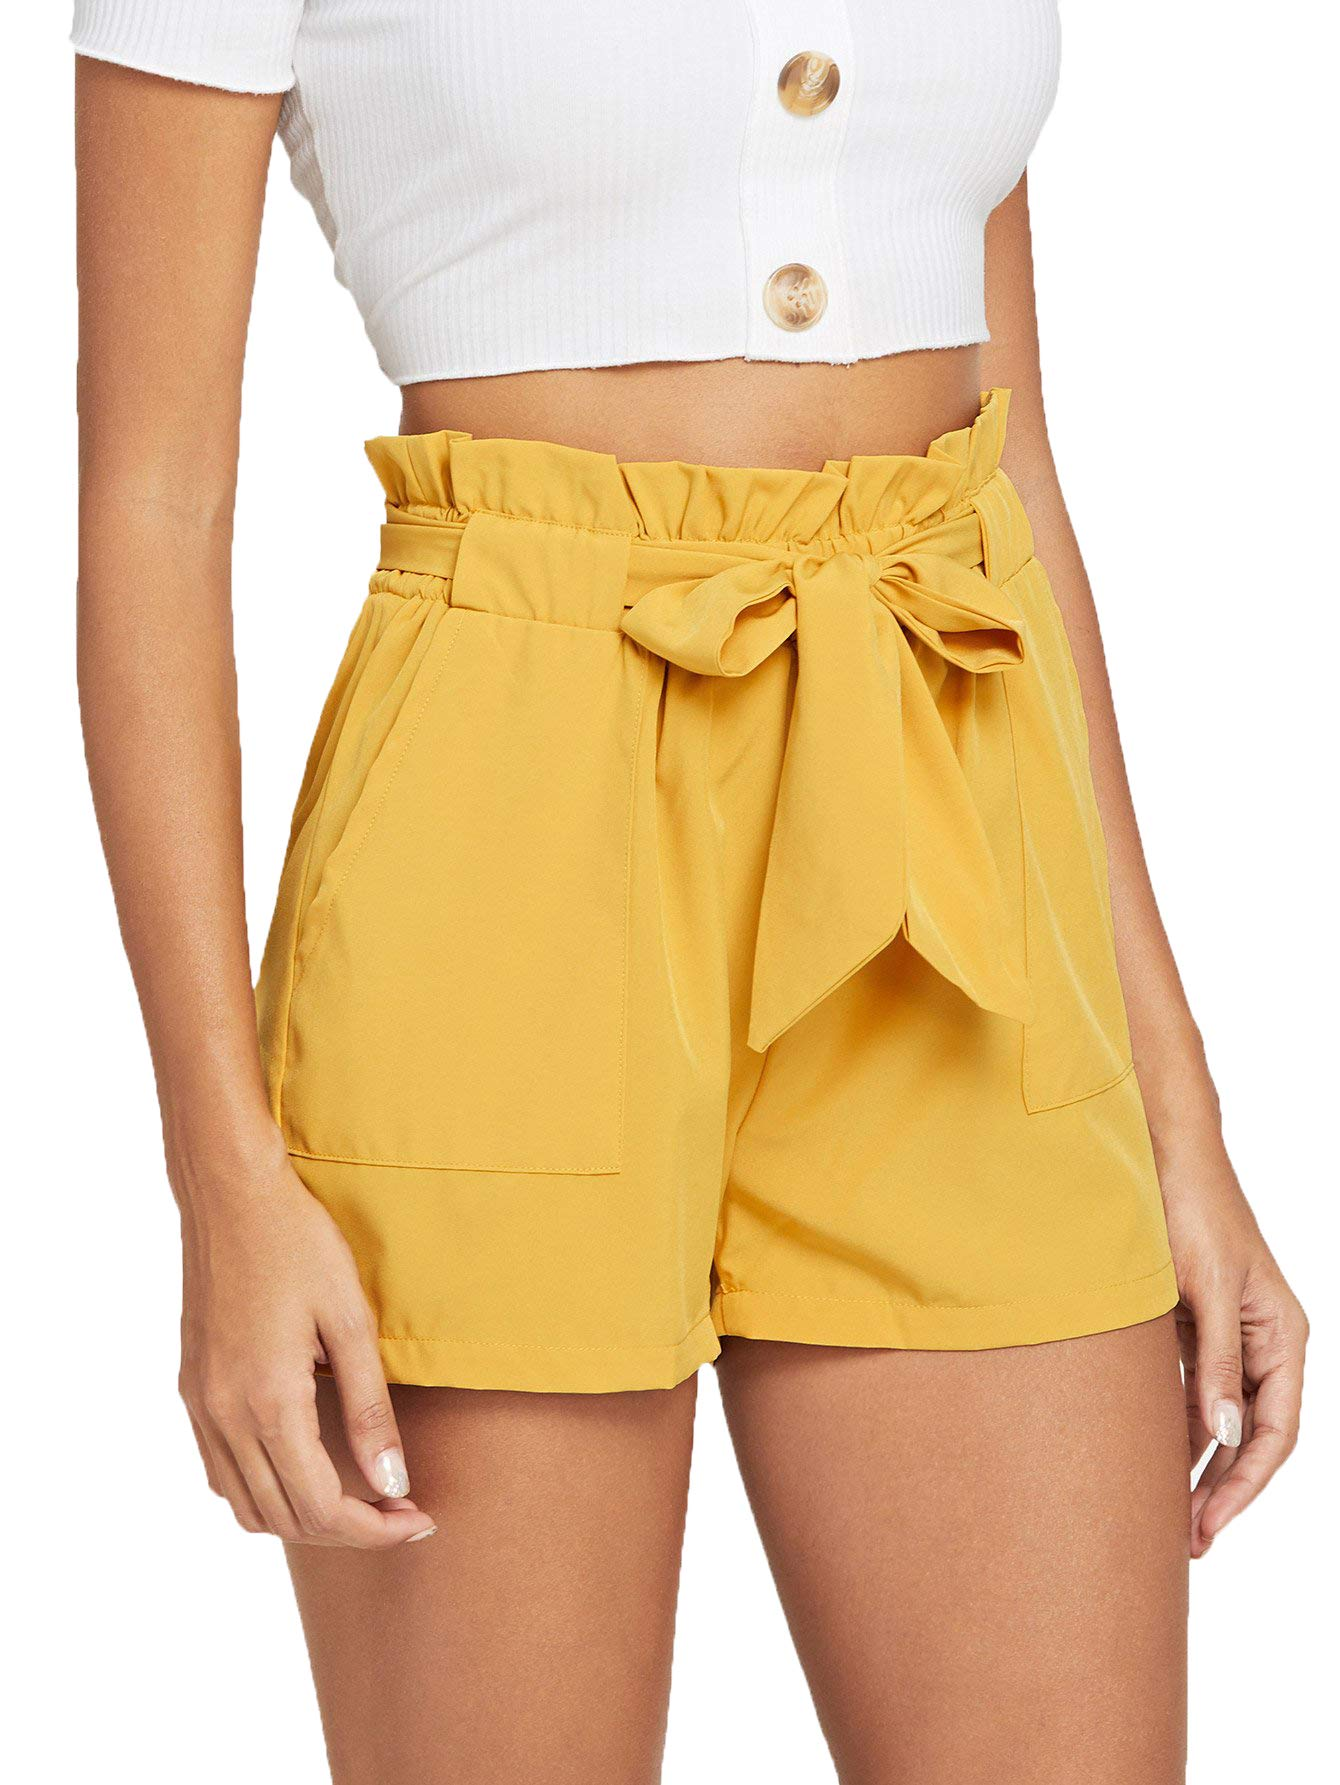 Romwe Women's Casual Elastic Waist Bowknot Summer Shorts with Pockets Yellow S